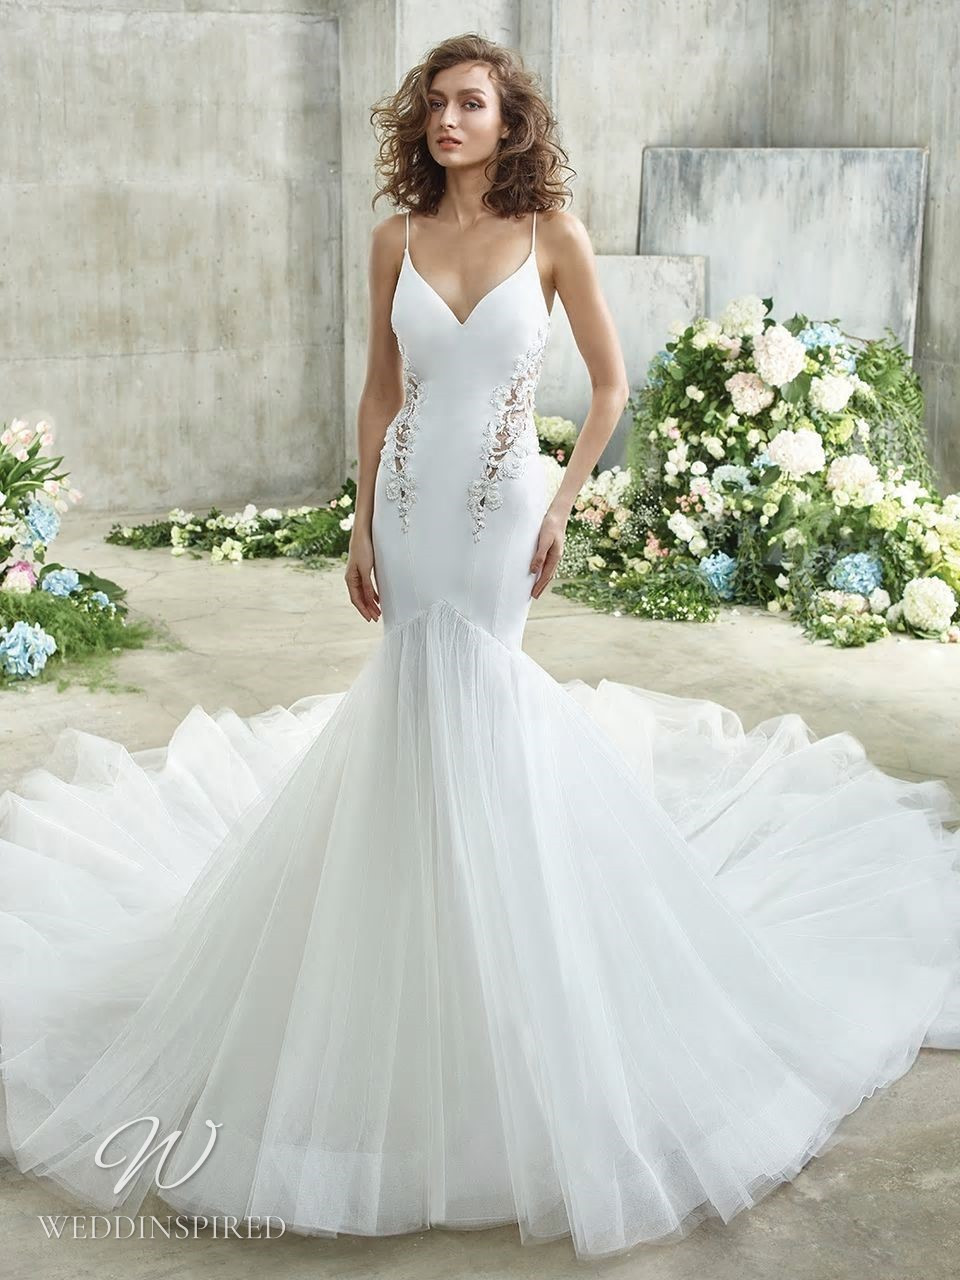 A Badgley Mischka mermaid wedding dress with a tulle skirt, lace and spaghetti straps